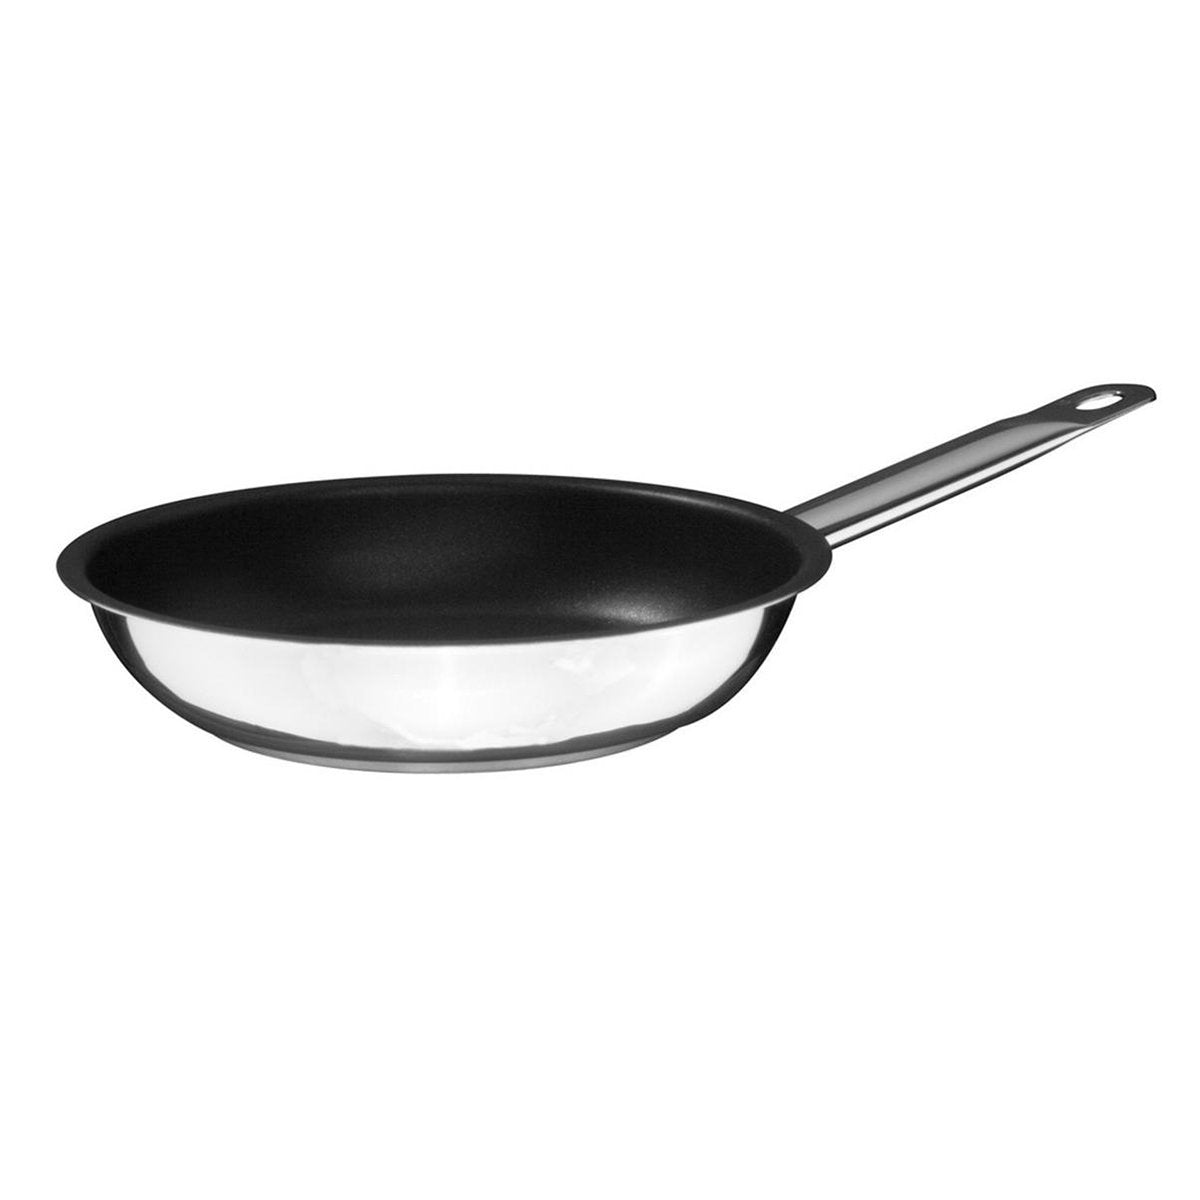 36*6 NON - STICK COATED FRYPAN